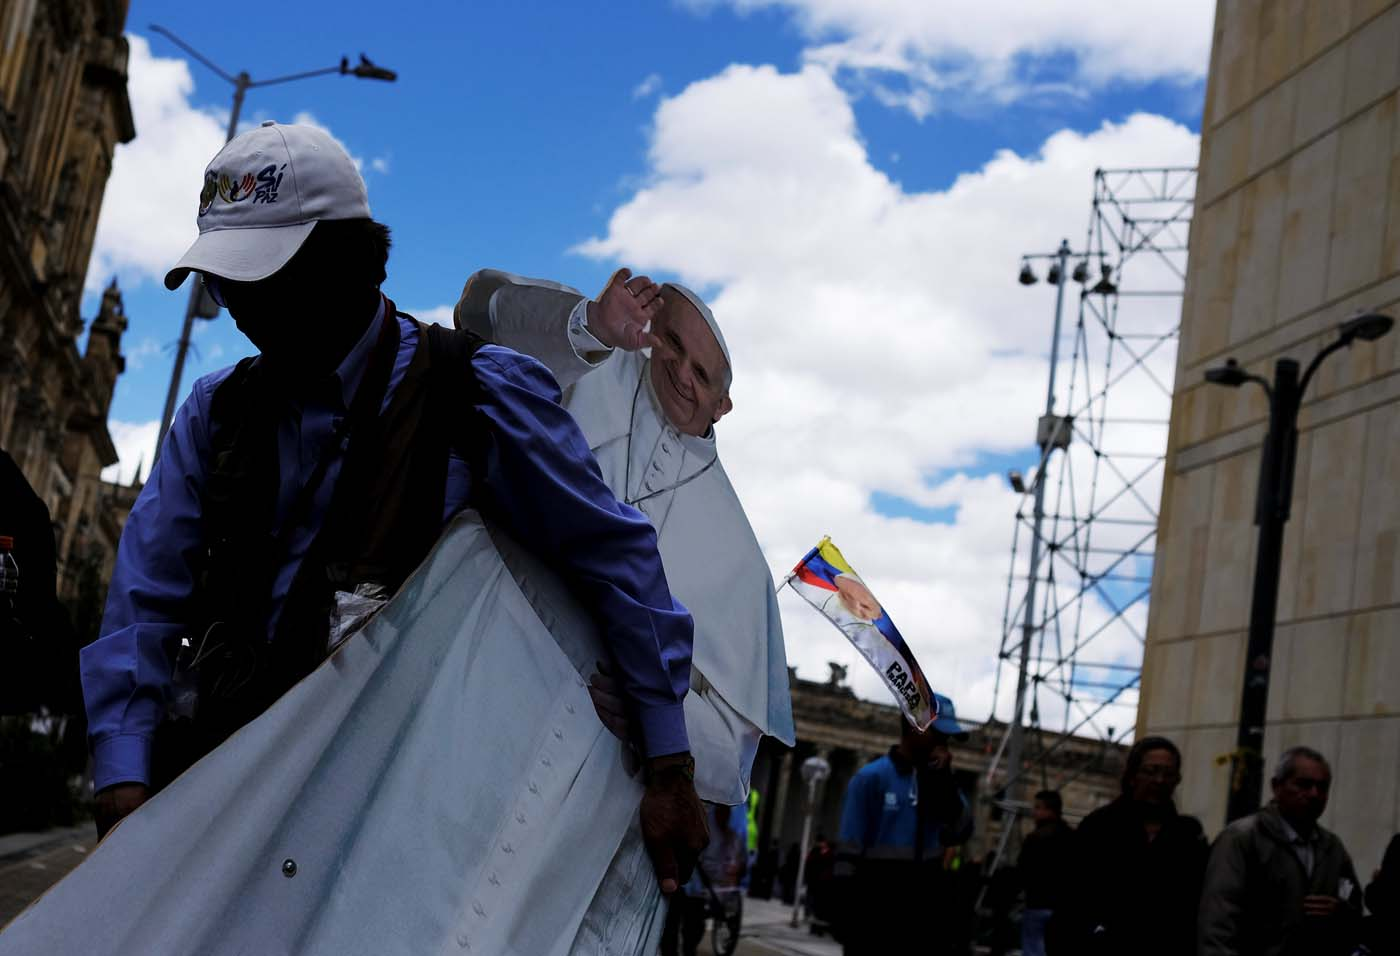 A man carries an image of Pope Francisco near Bolivar square in Bogota, Colombia September 4, 2017. REUTERS/Nacho Doce